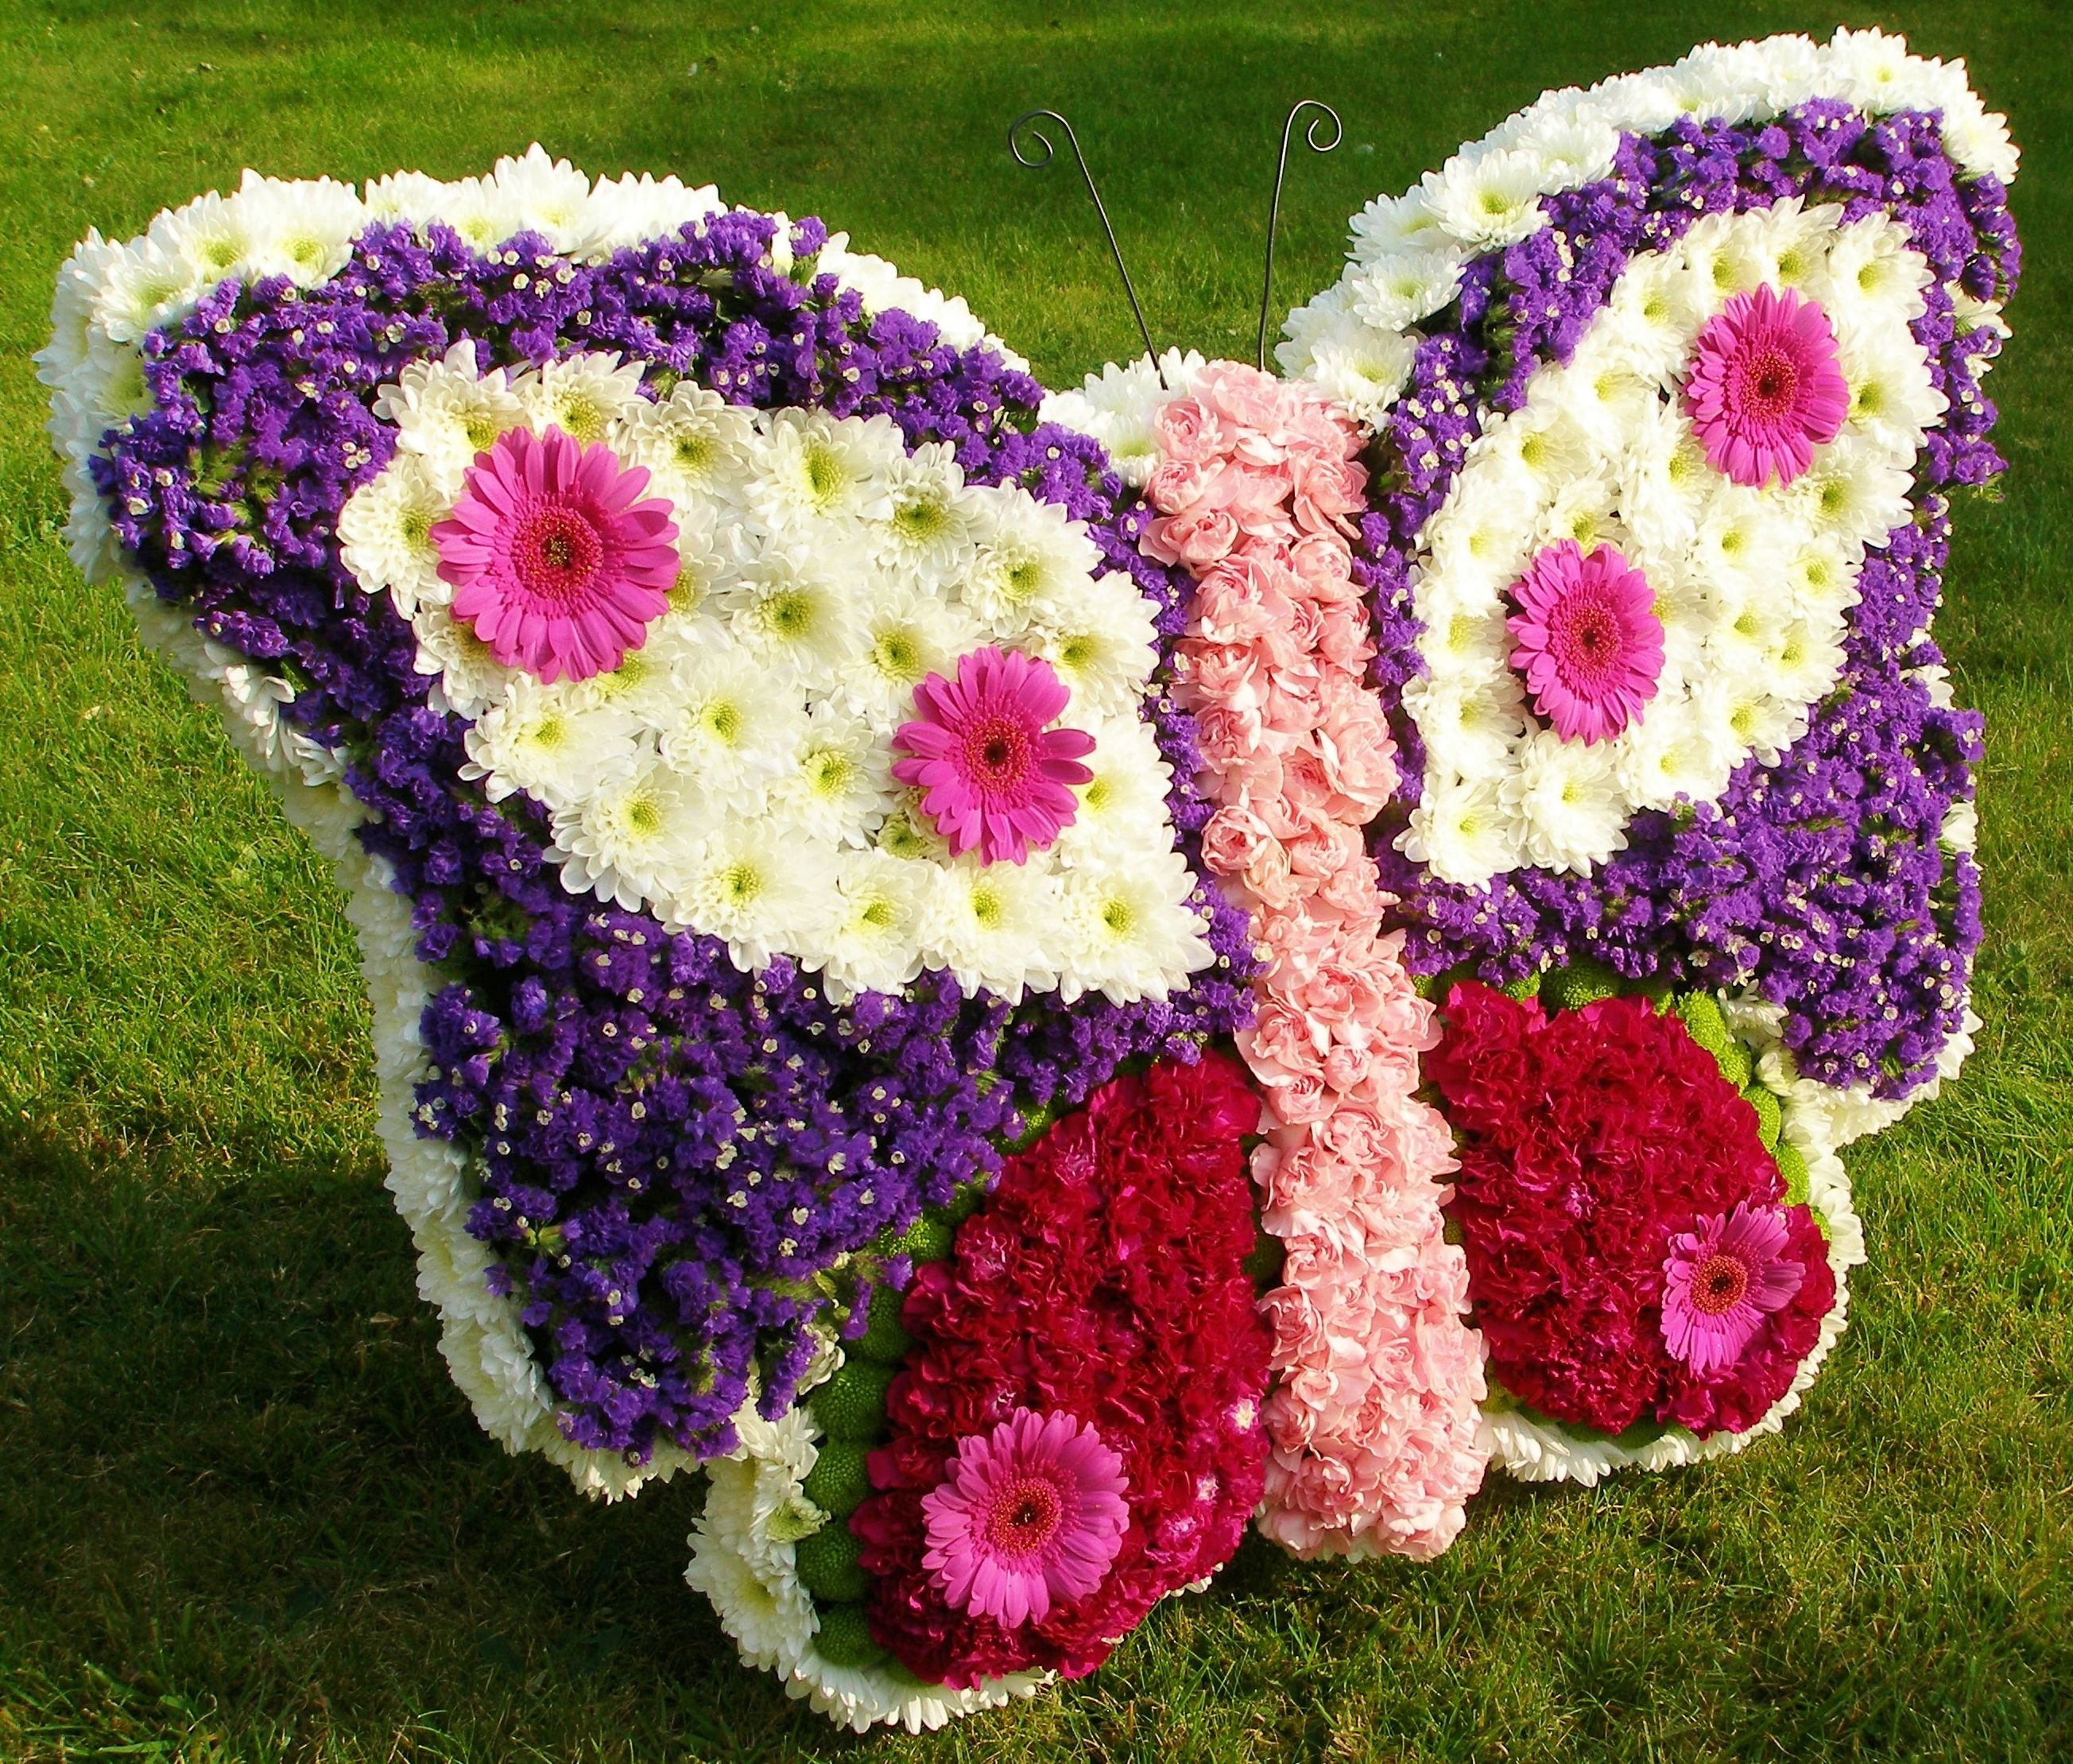 Best wild flowers butterfly funeral flowers wild flowers butterfly funeral flowers these flowers are very beautiful here we provide a collections of various pictures of beautiful flowers charming izmirmasajfo